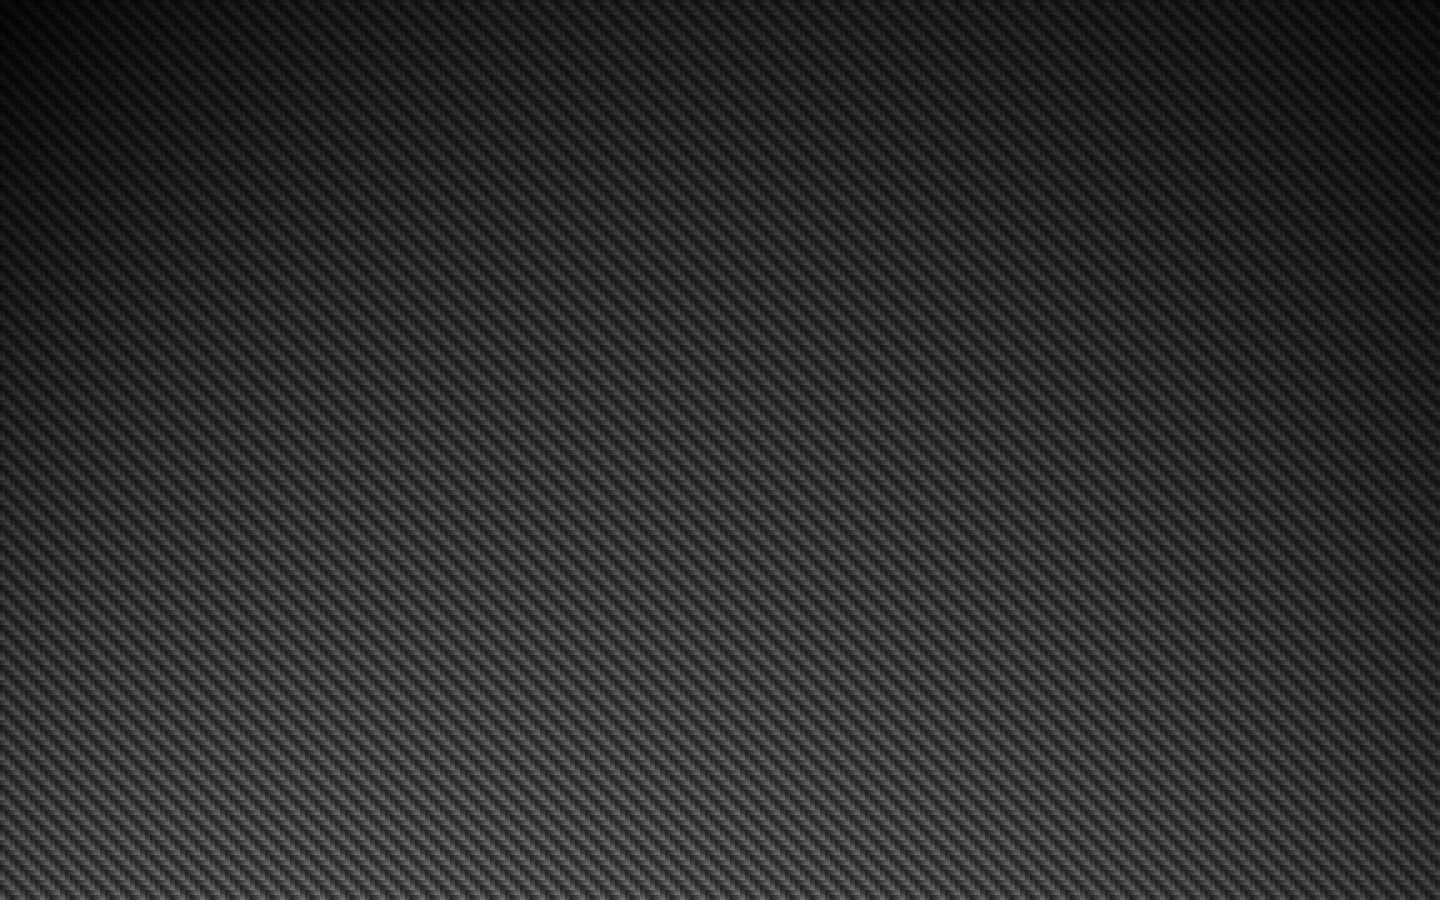 10 new real carbon fiber wallpaper full hd 1920 1080 for pc background 2019 - Real carbon fiber wallpaper ...